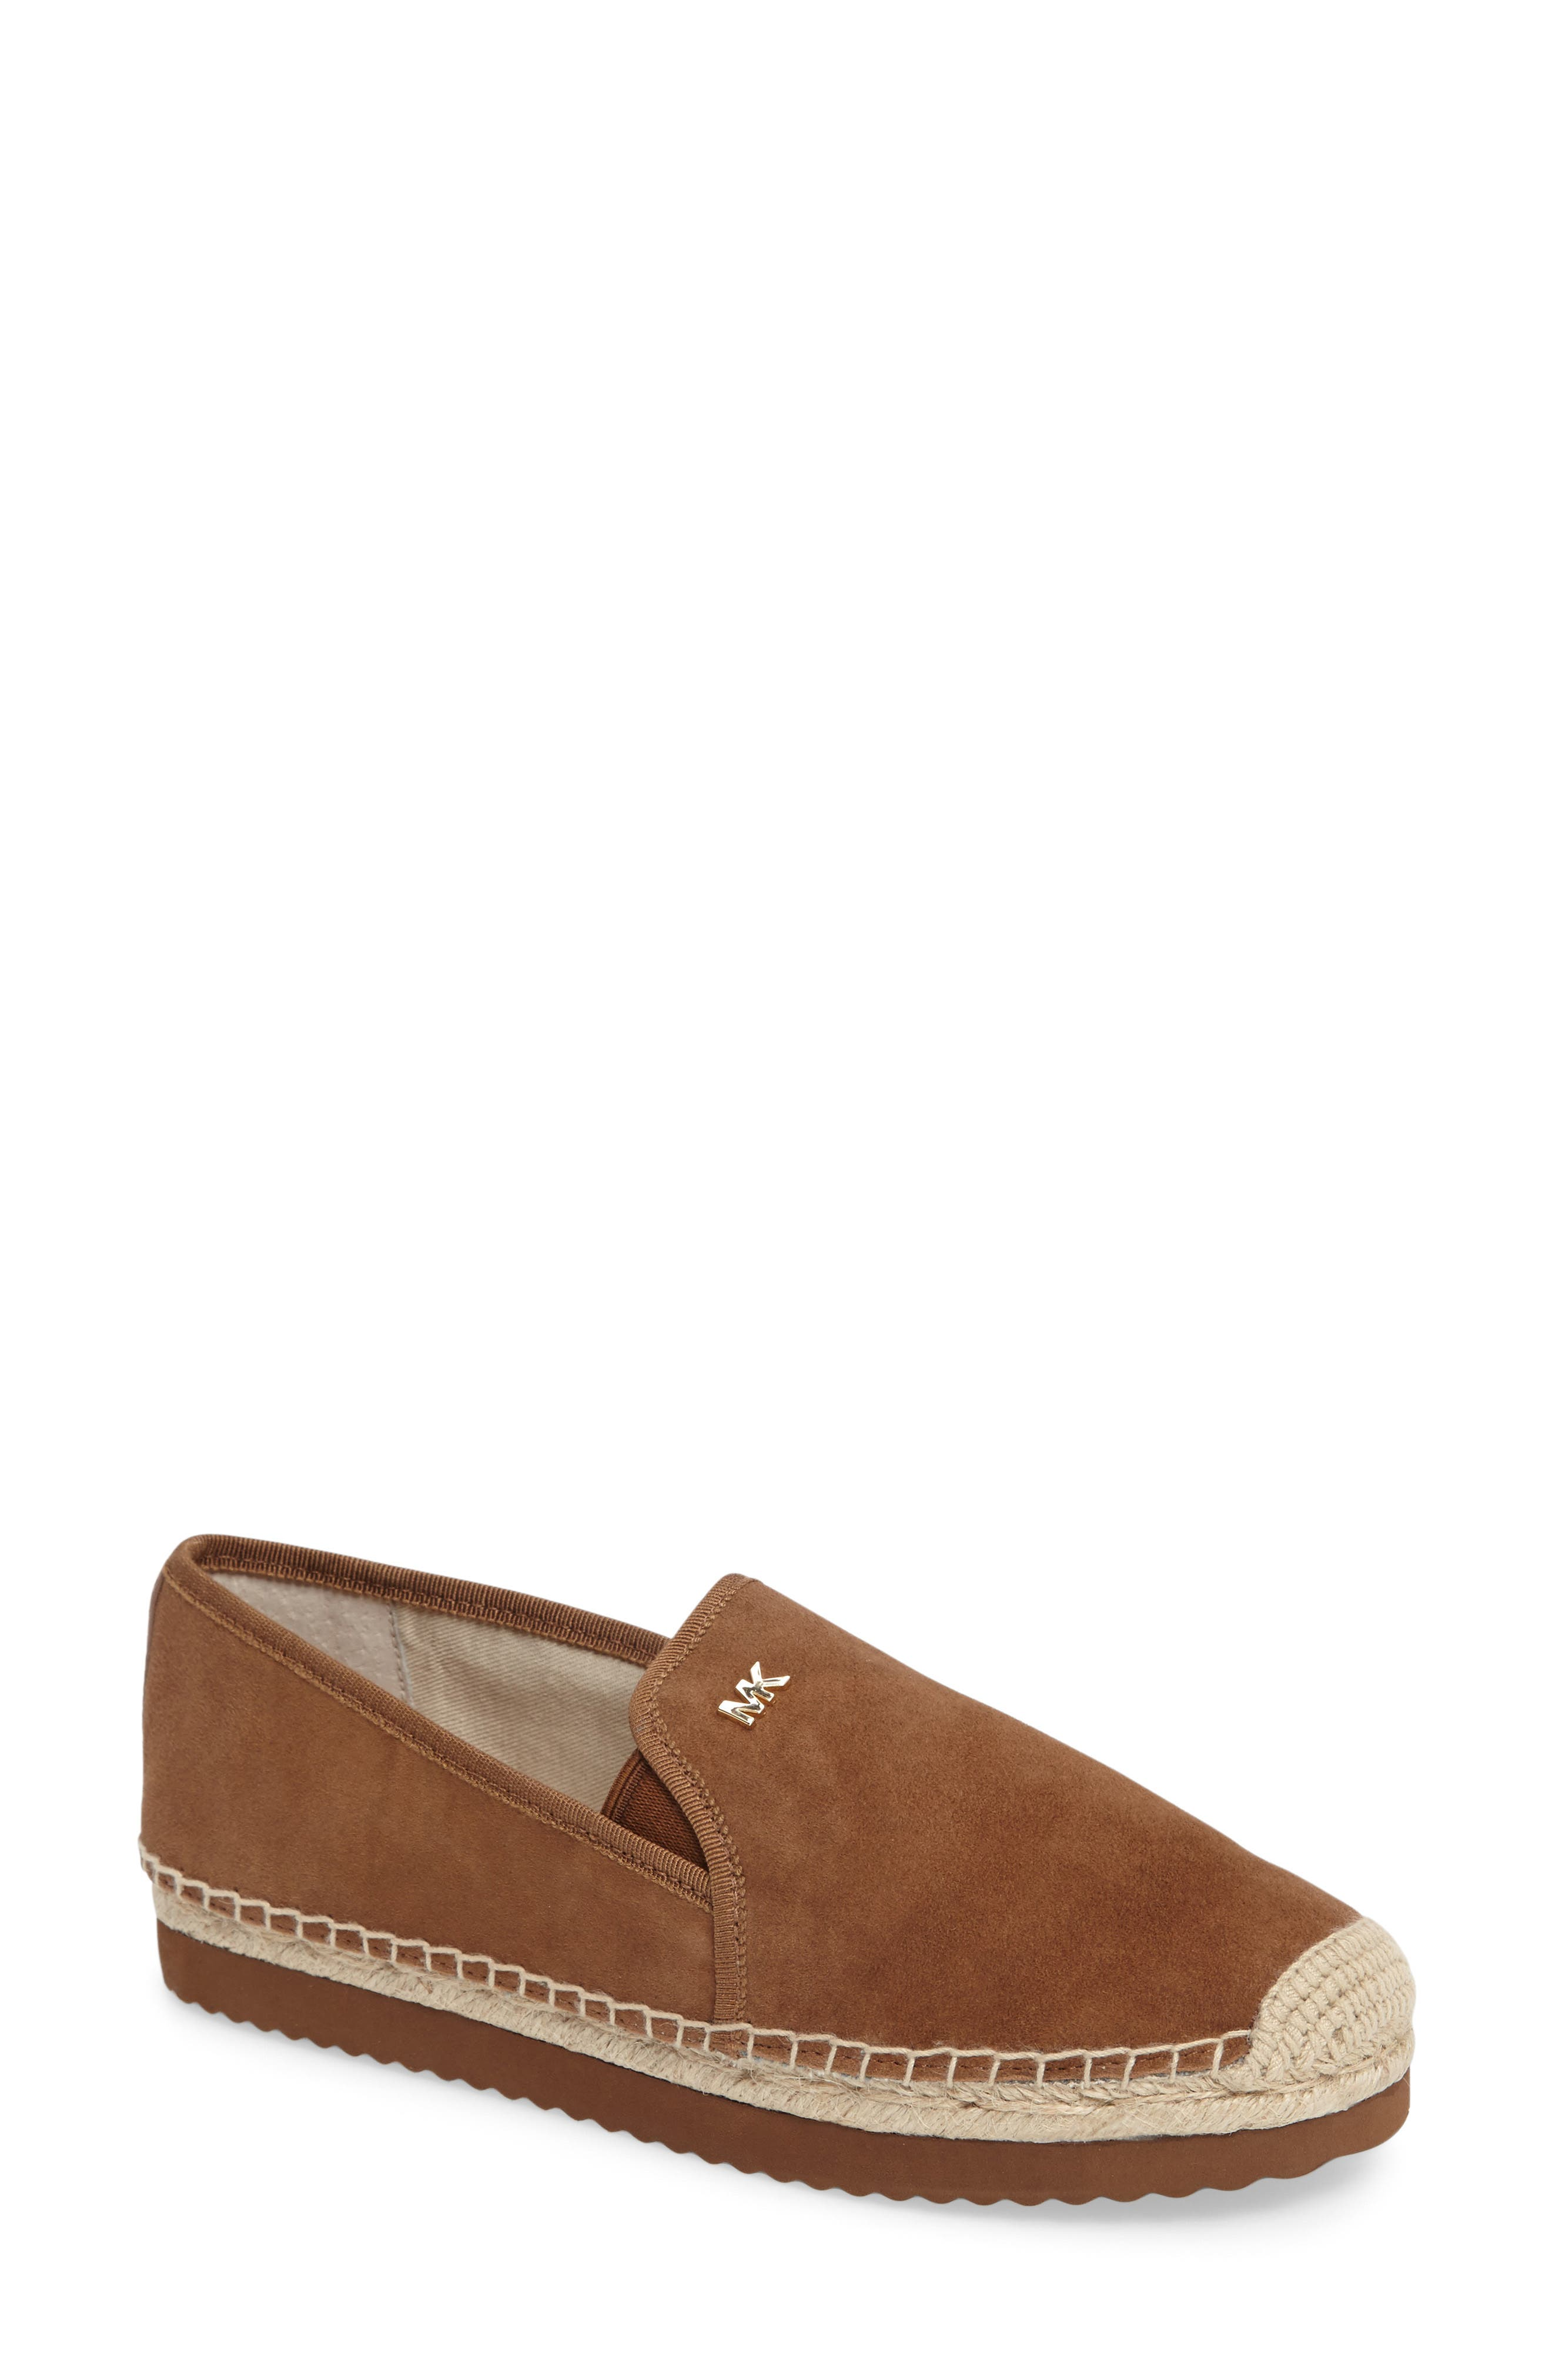 Hastings Espadrille Slip-On,                             Main thumbnail 4, color,